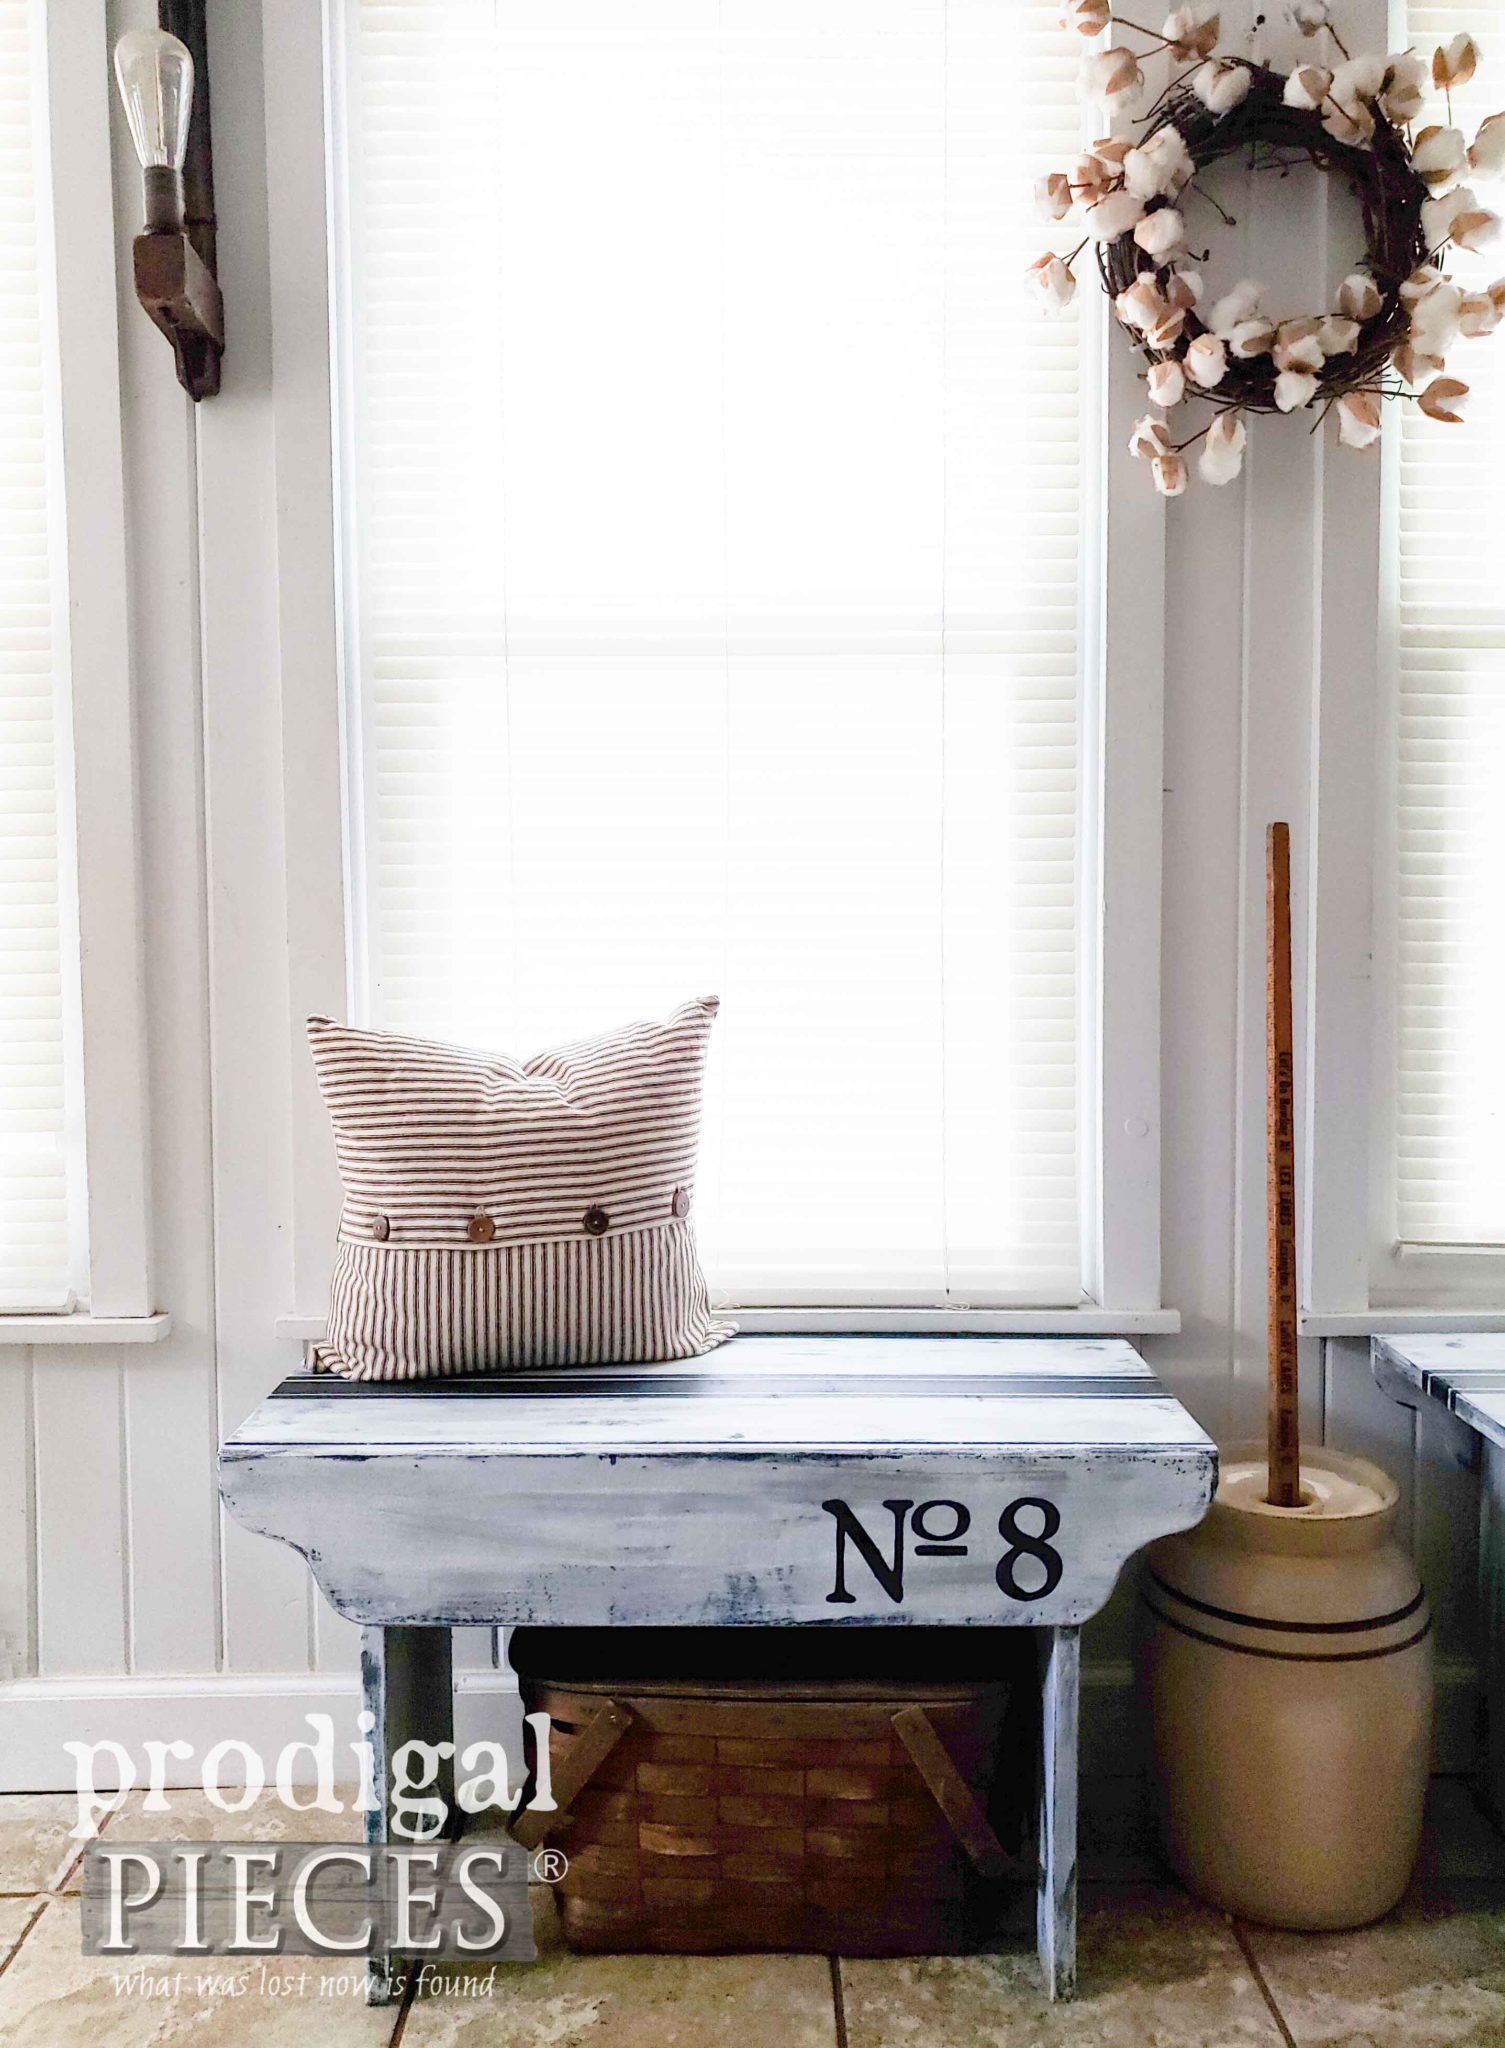 No. 8 Rustic Farmhouse Bench with Grain Sack Stripe for Home Decor by Larissa of Prodigal Pieces | prodigalpieces.com